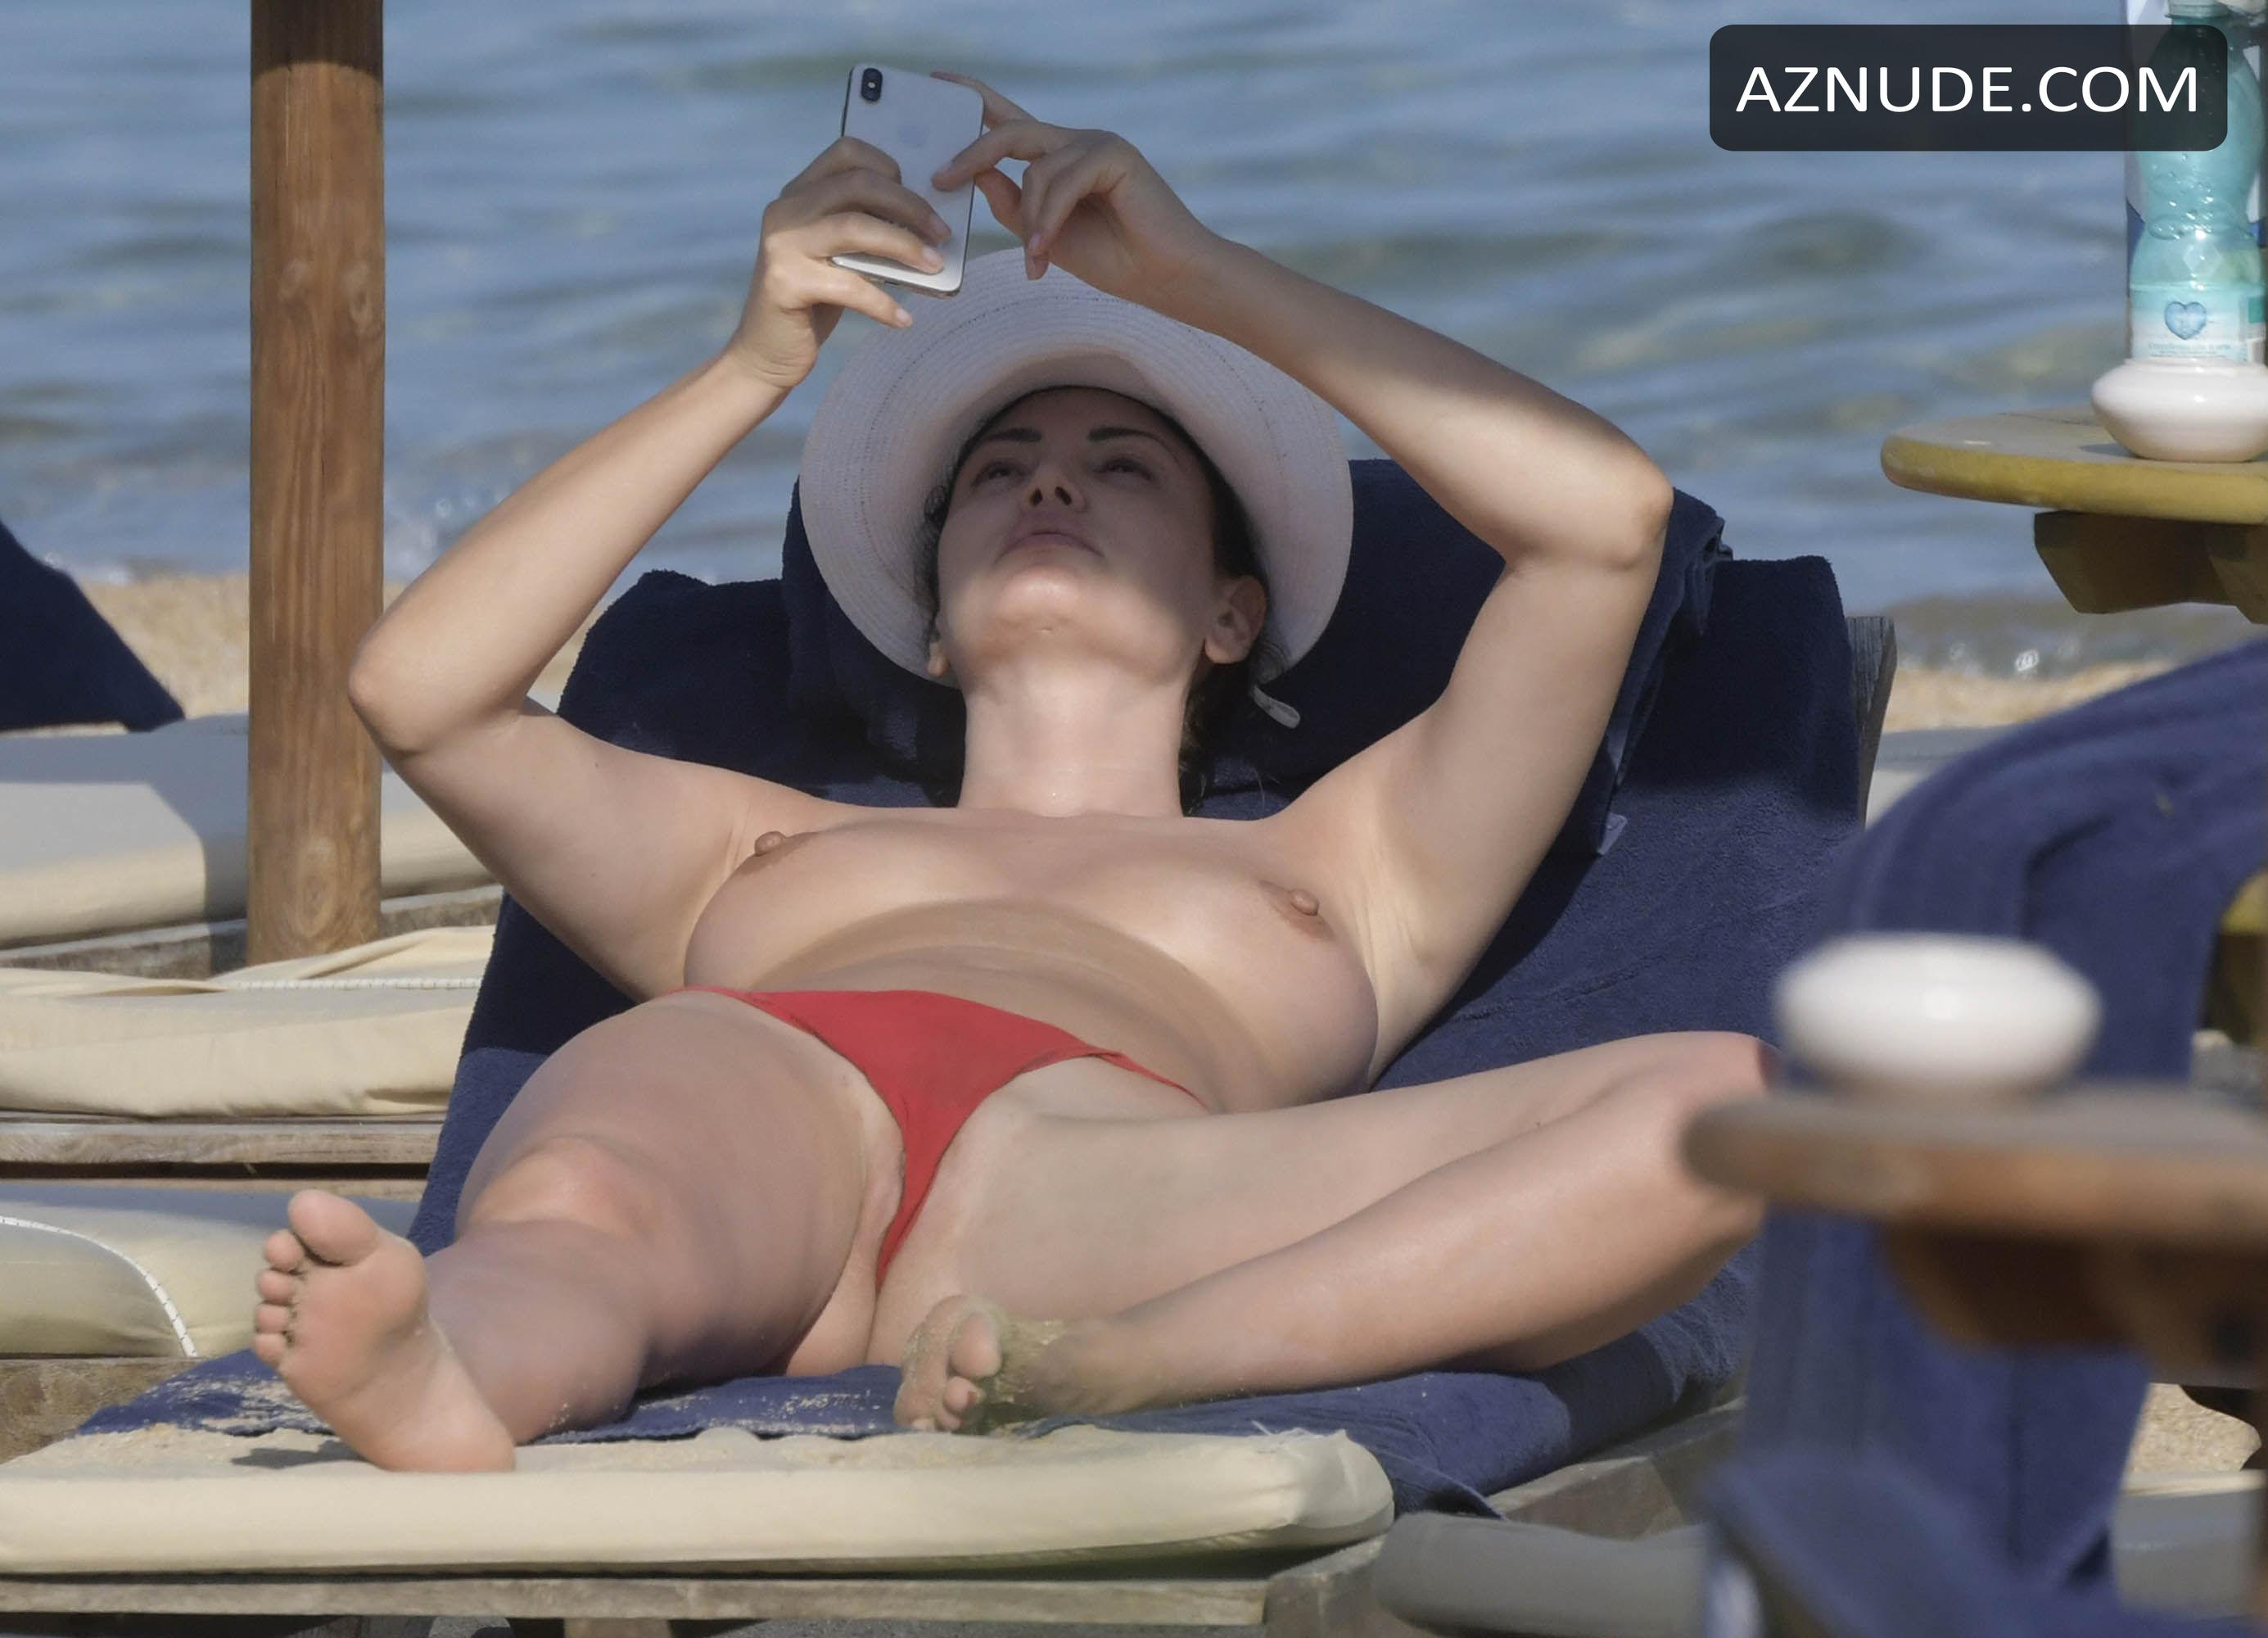 Bleona Qereti Topless In Amazing Tits And Pussy On The -7846